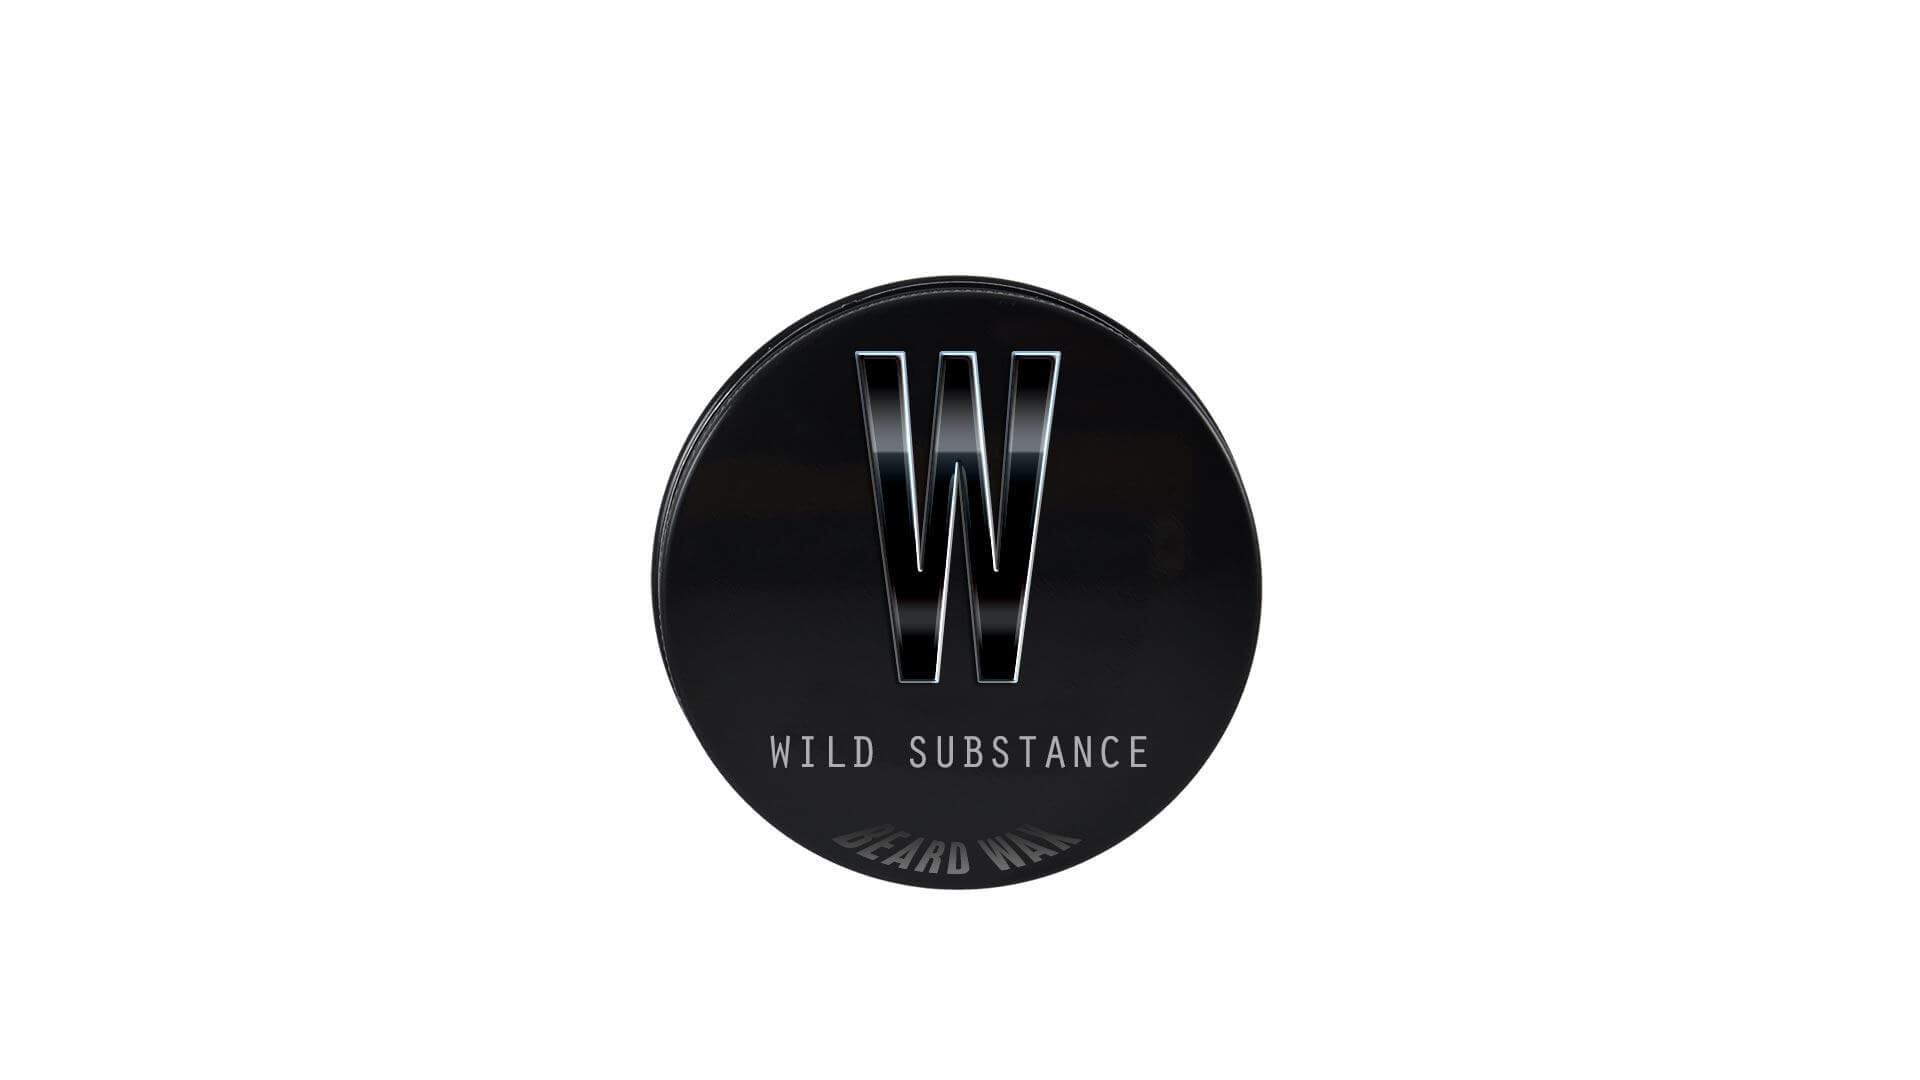 Single 30ml tin of Wild Substance premium quality beard wax from Beardifulman